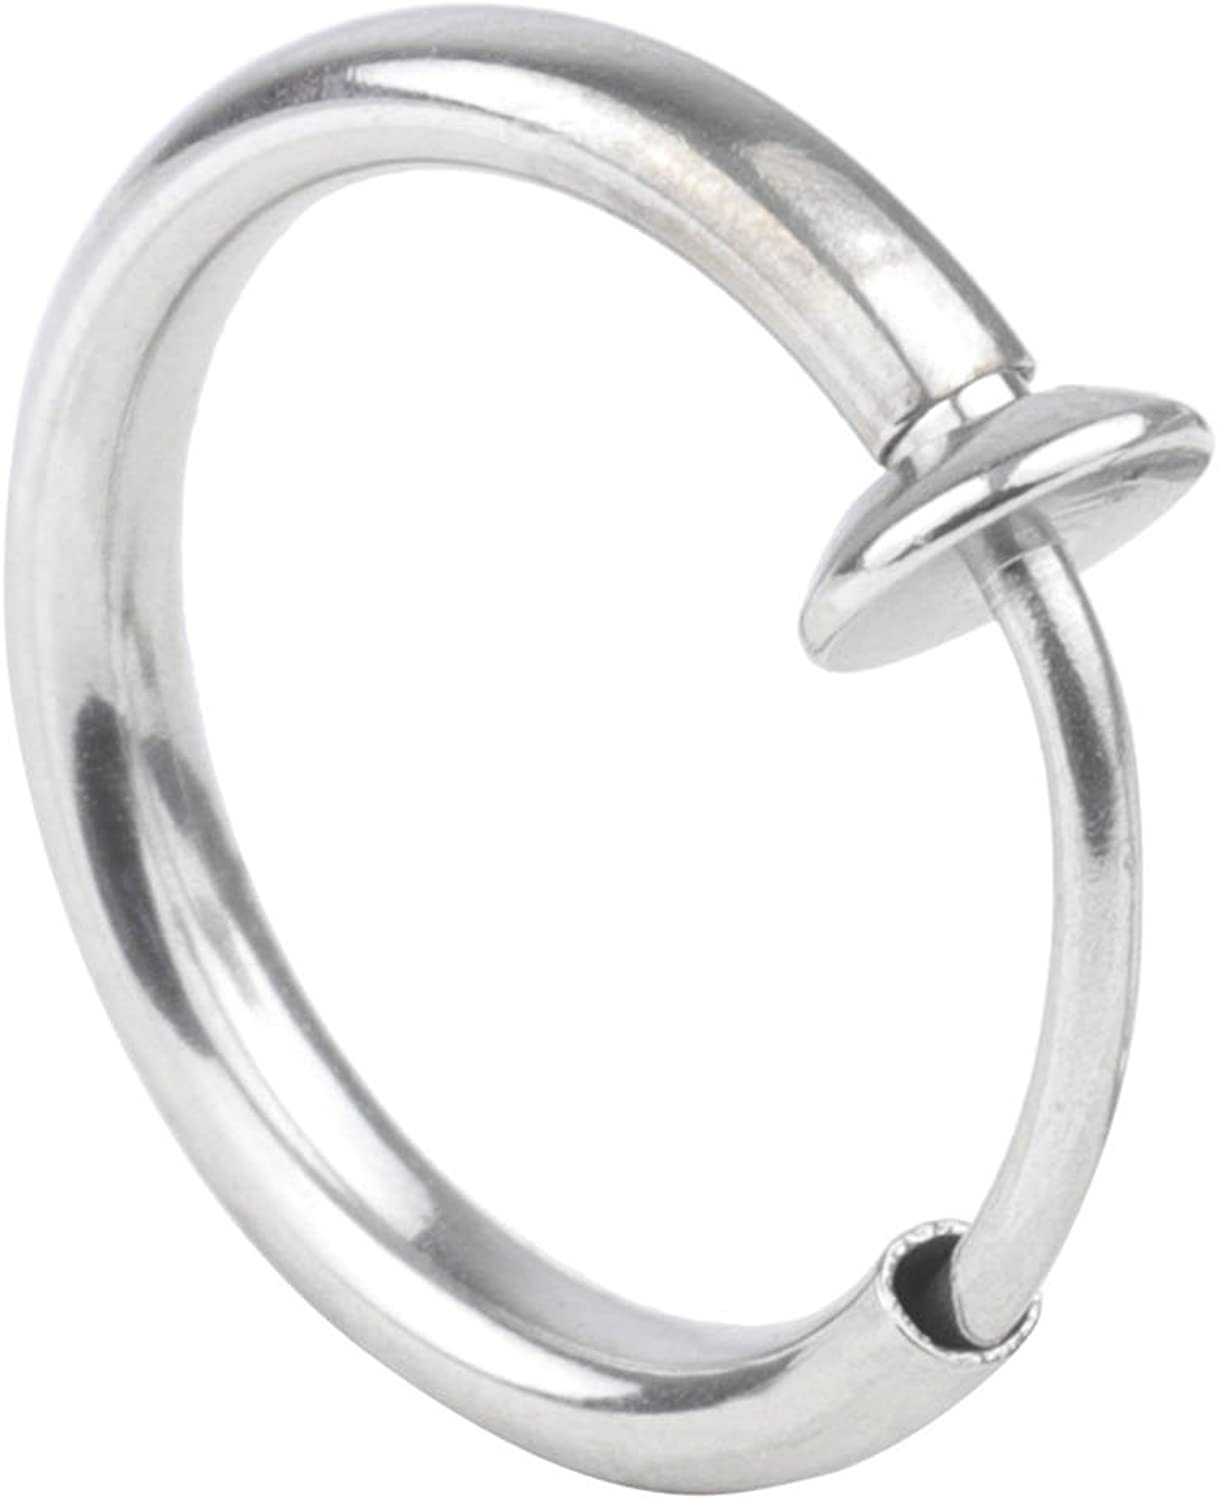 A++ 1Pcs 8mm Non Piercing Septum Piercing Spring Action Fake Body Jewelry Hoop Fashion Piercing Jewelry